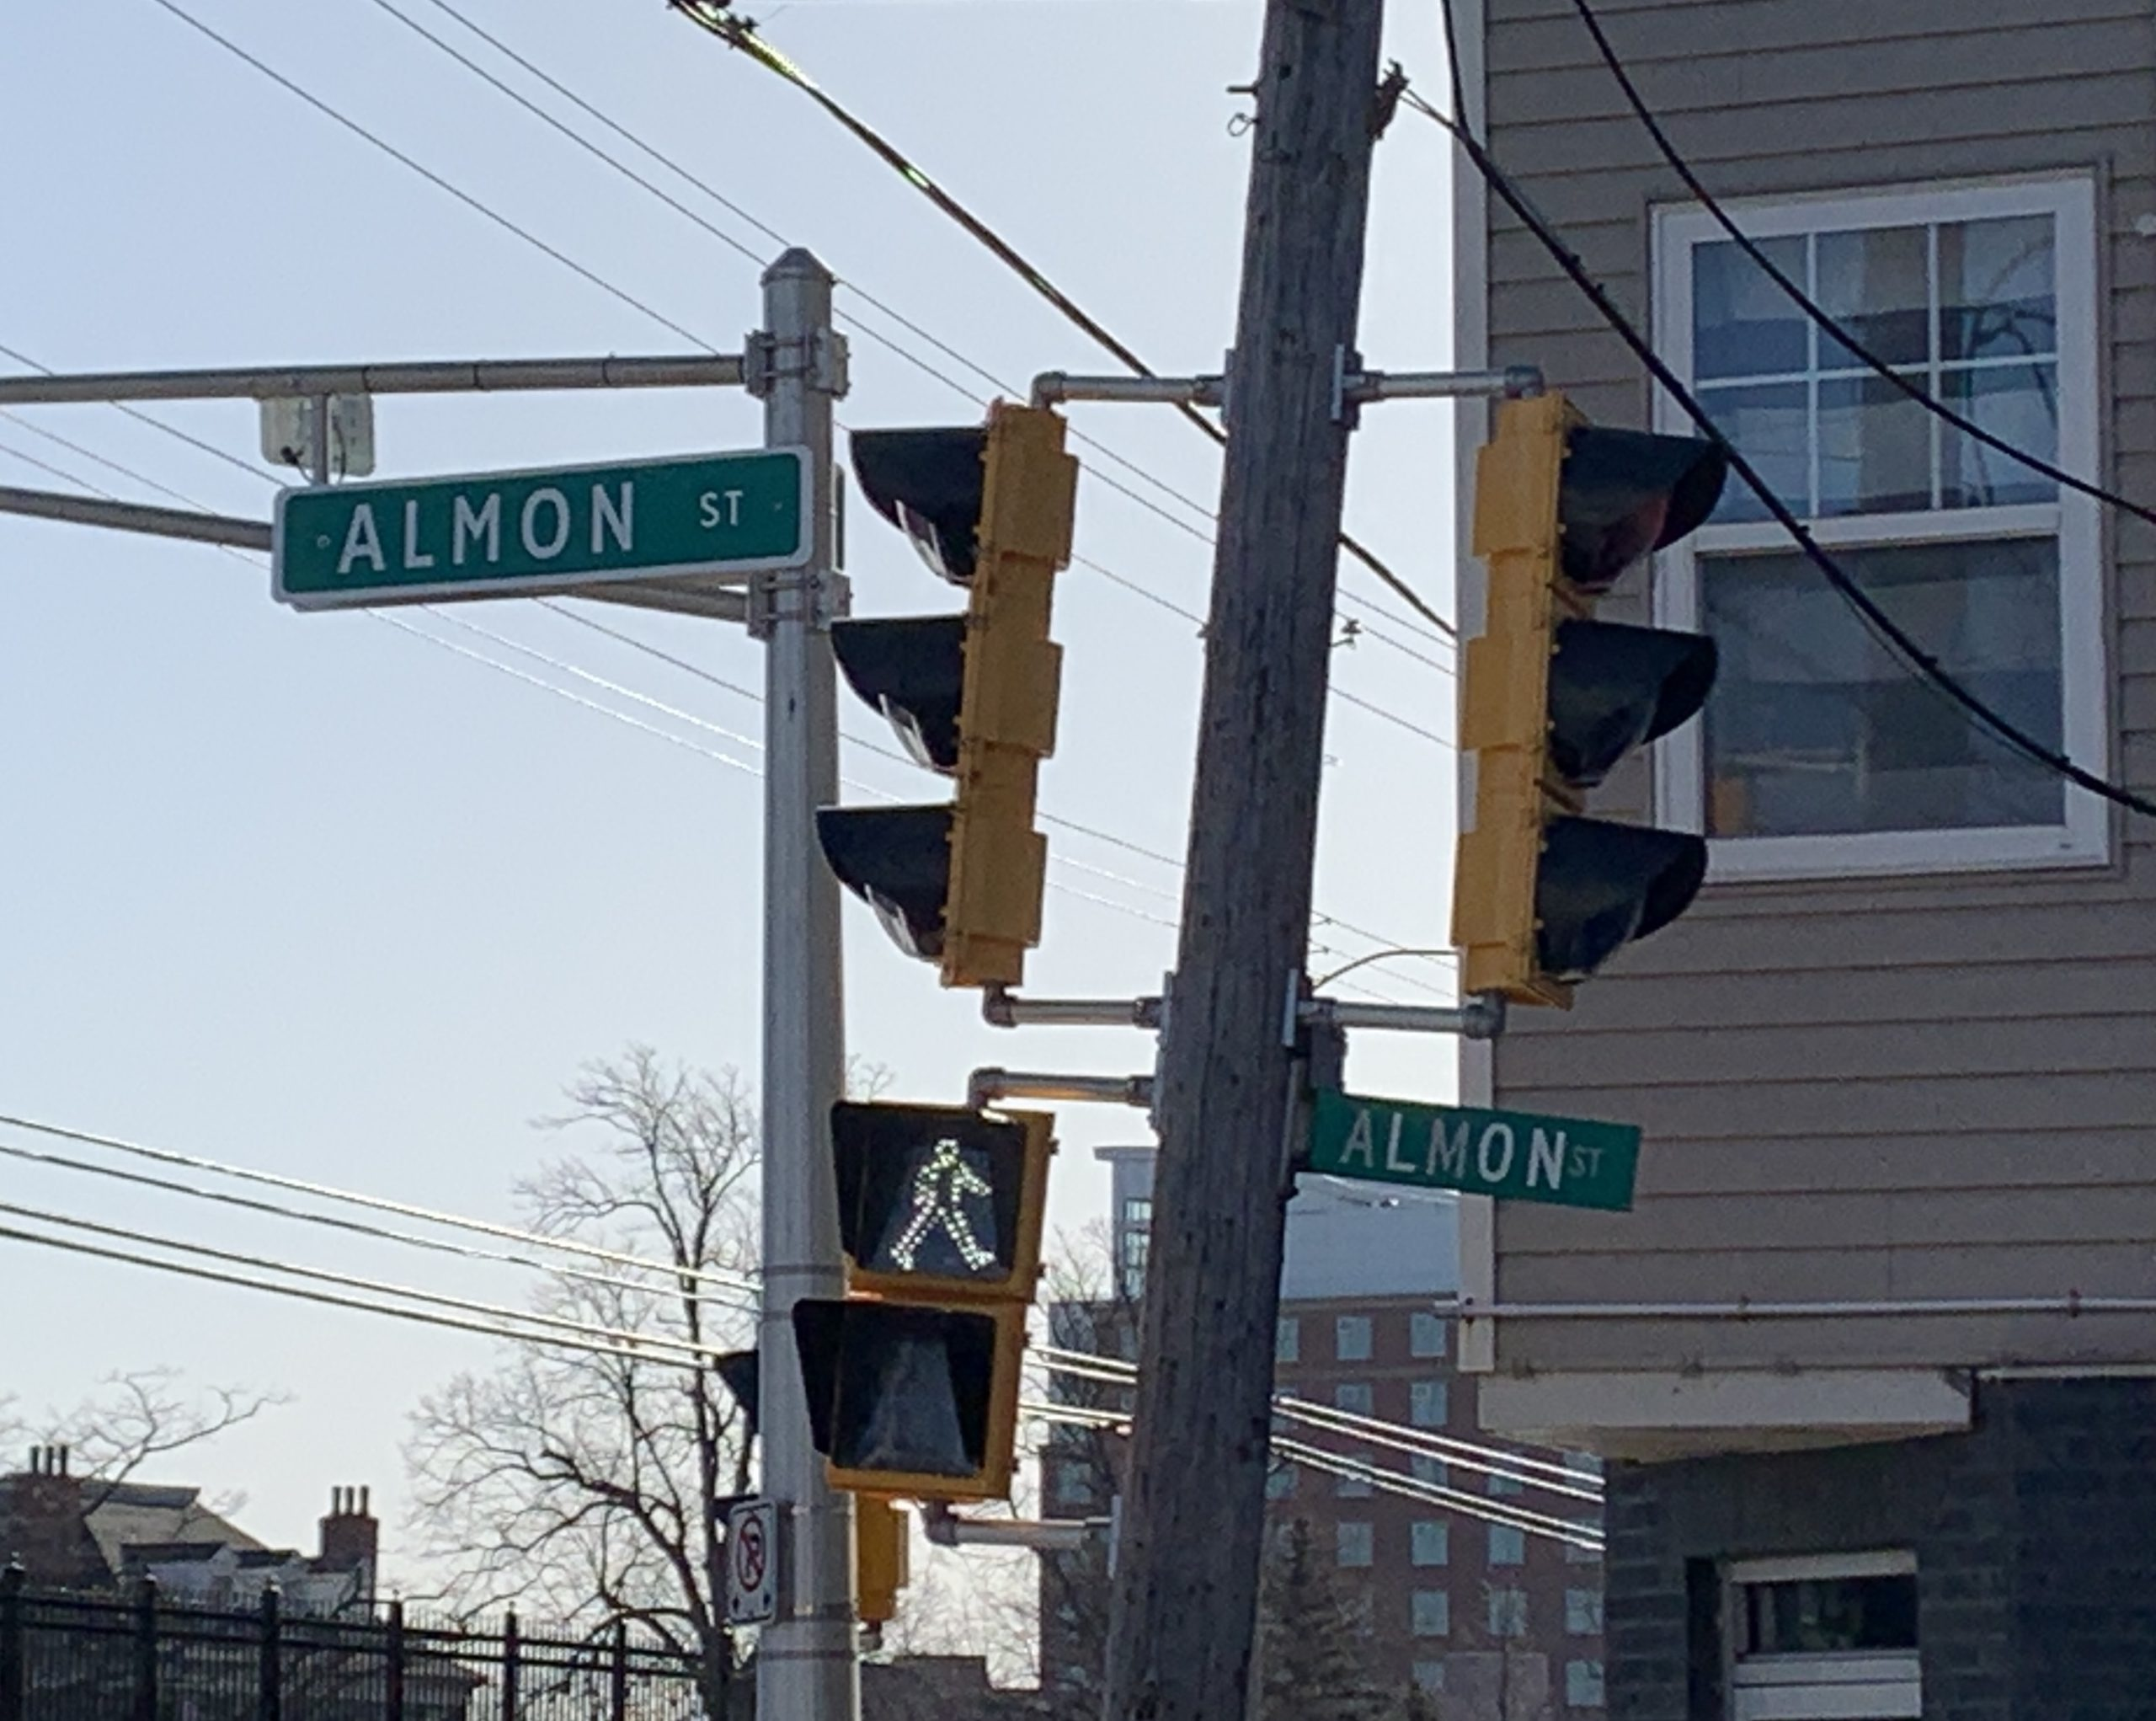 The two signs for Almon Street at its junction with Gottingen Street are a perfect illustration of the difference in effectiveness of both styles of signs. The oversized sign is larger and is mounted over the roadway, while the smaller sign is farther off to the side and harder to read while driving.